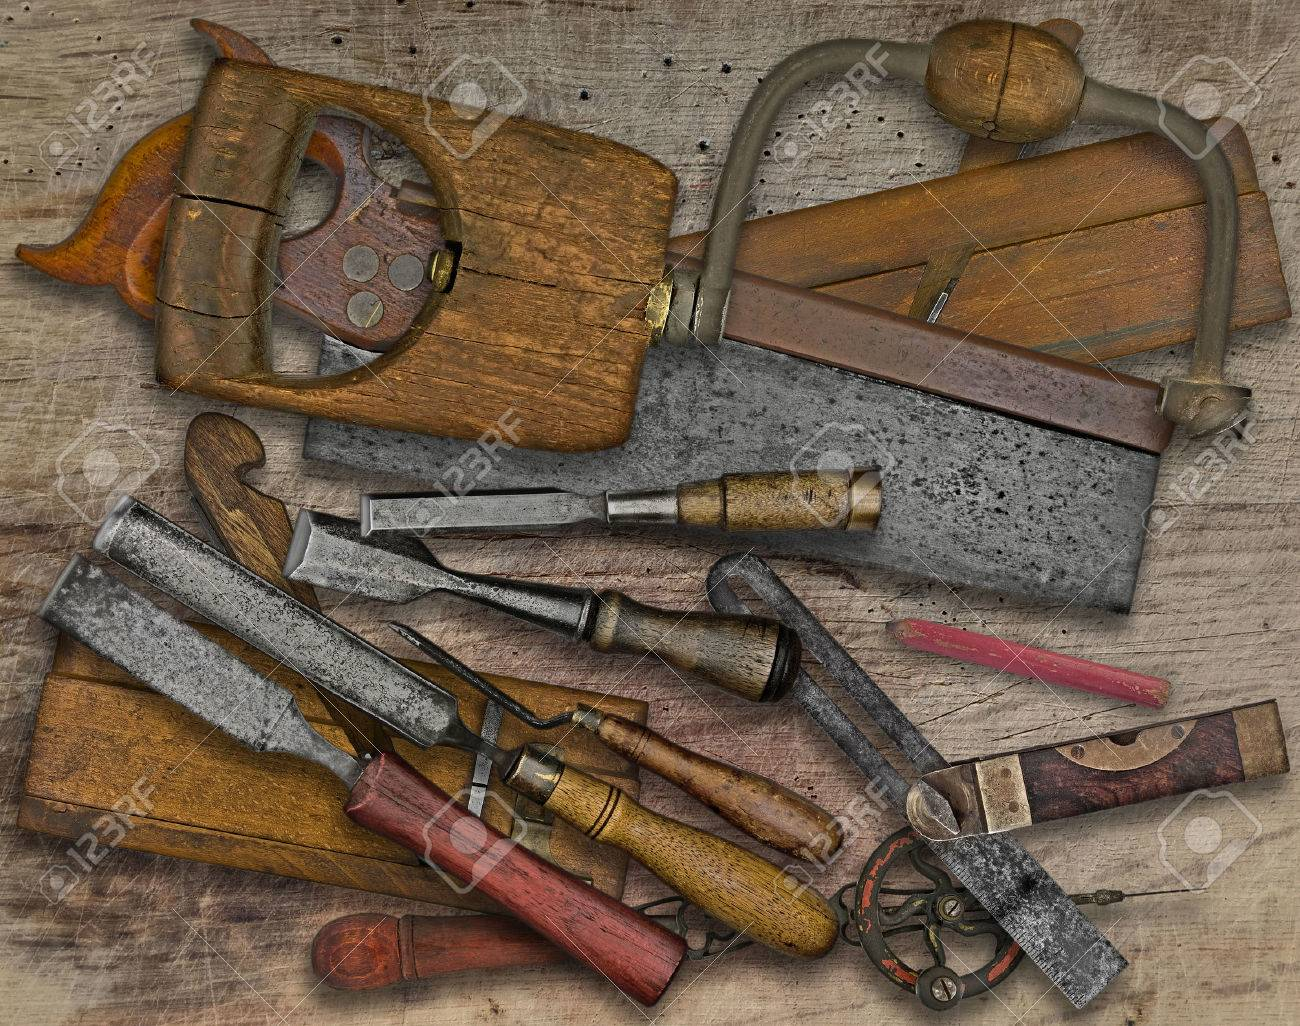 Vintage Woodworking Tools Over Wooden Bench Stock Photo Picture And Royalty Free Image Image 56593760